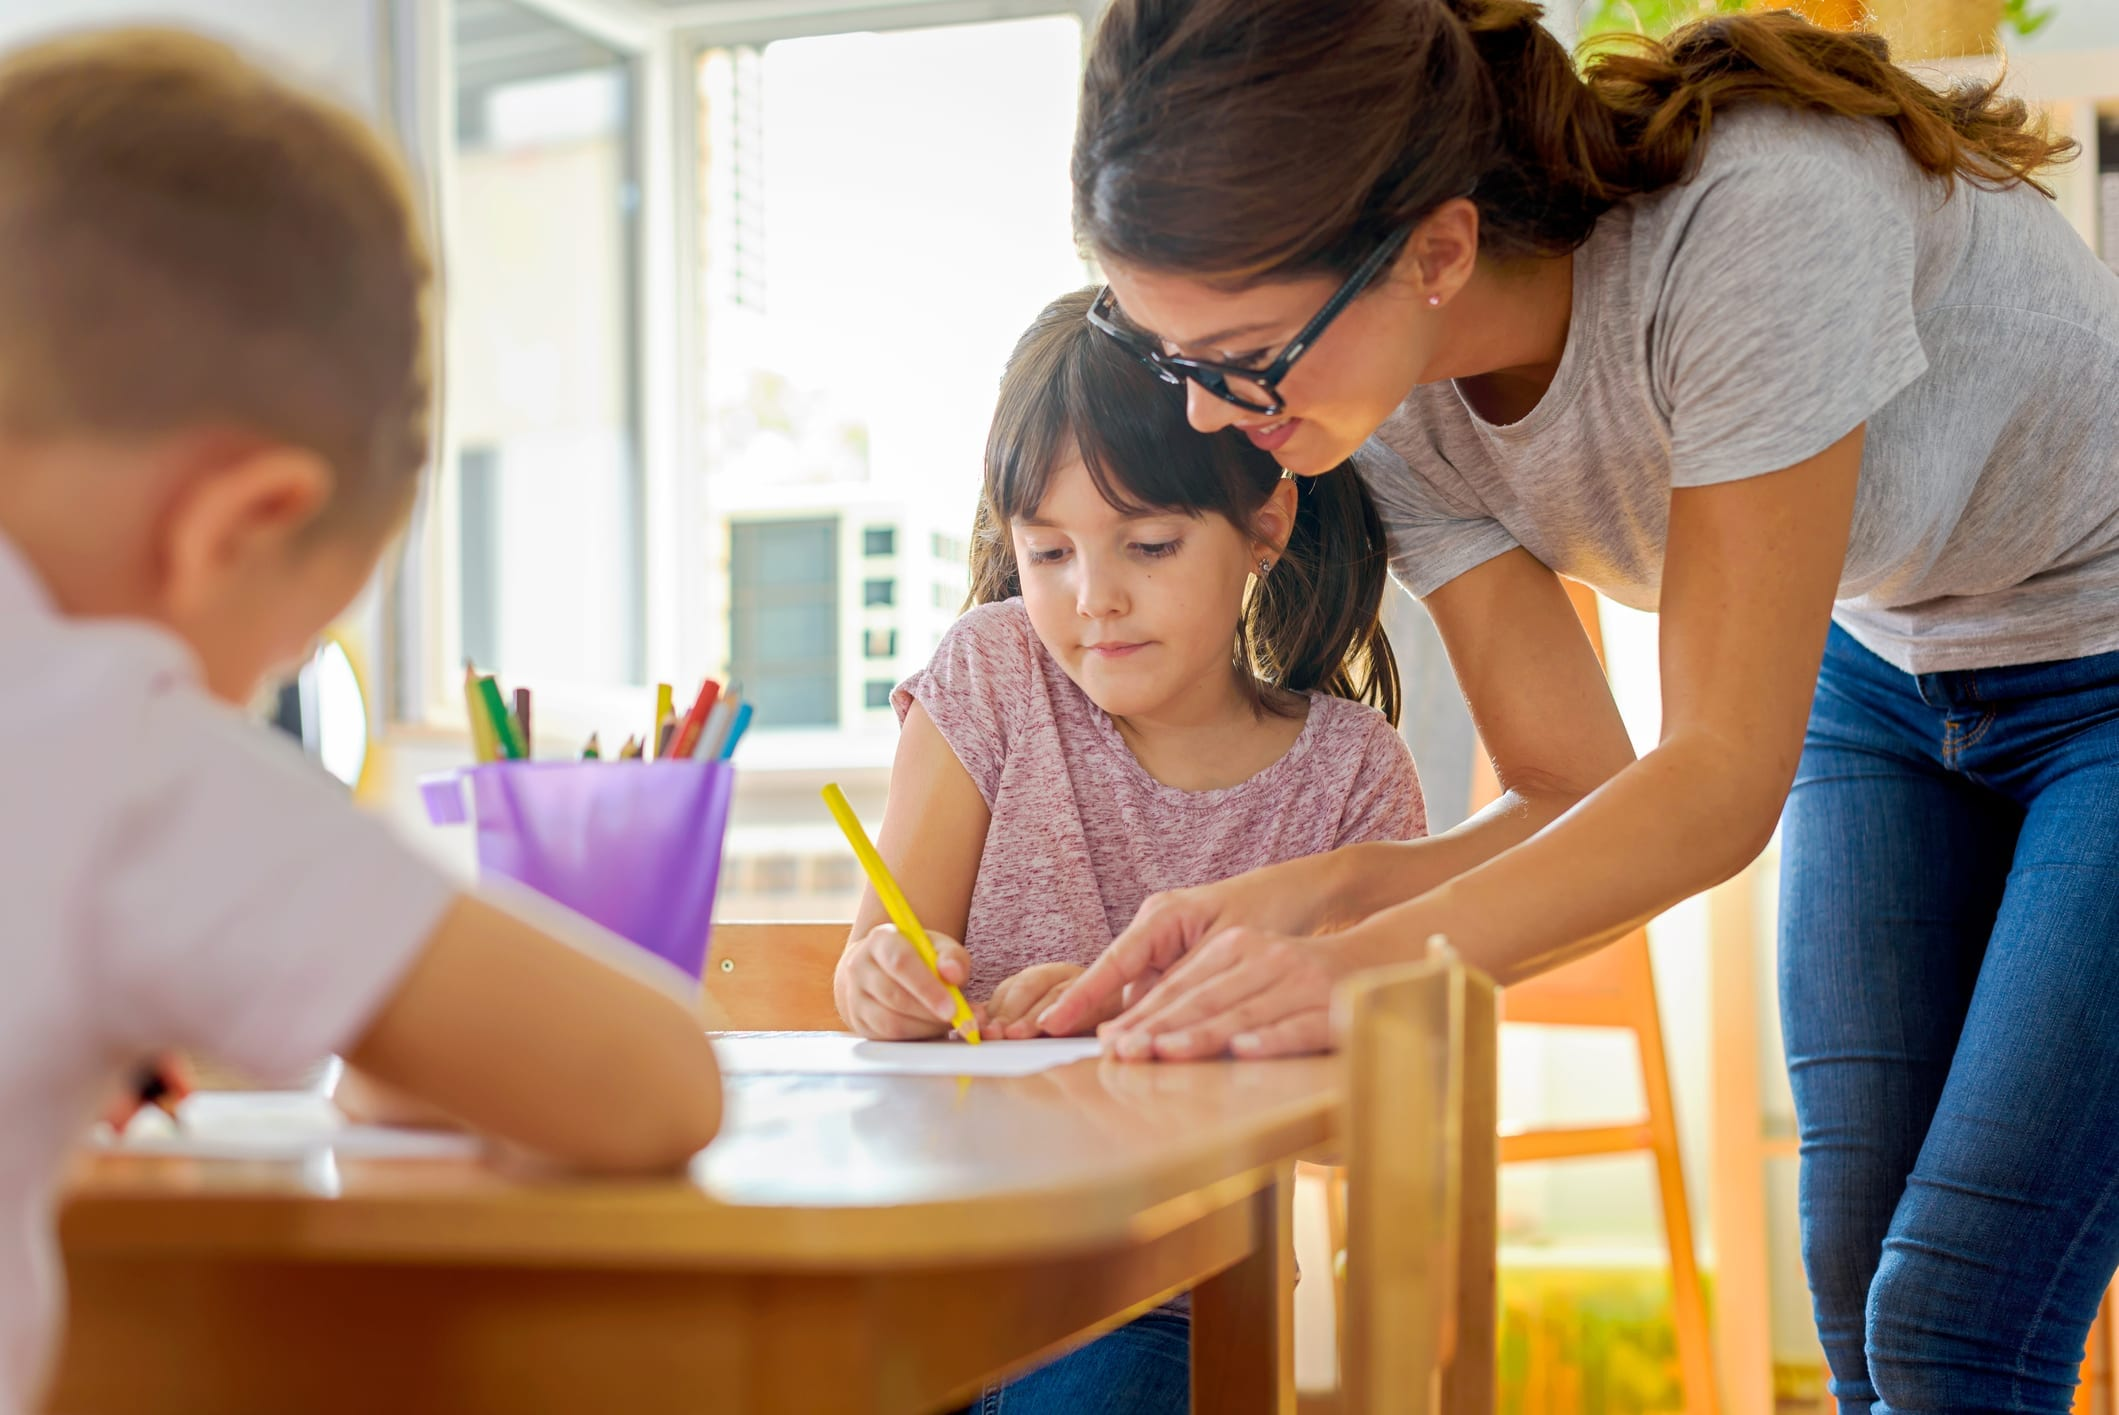 Children drawing with smiling preschool teacher assisting them